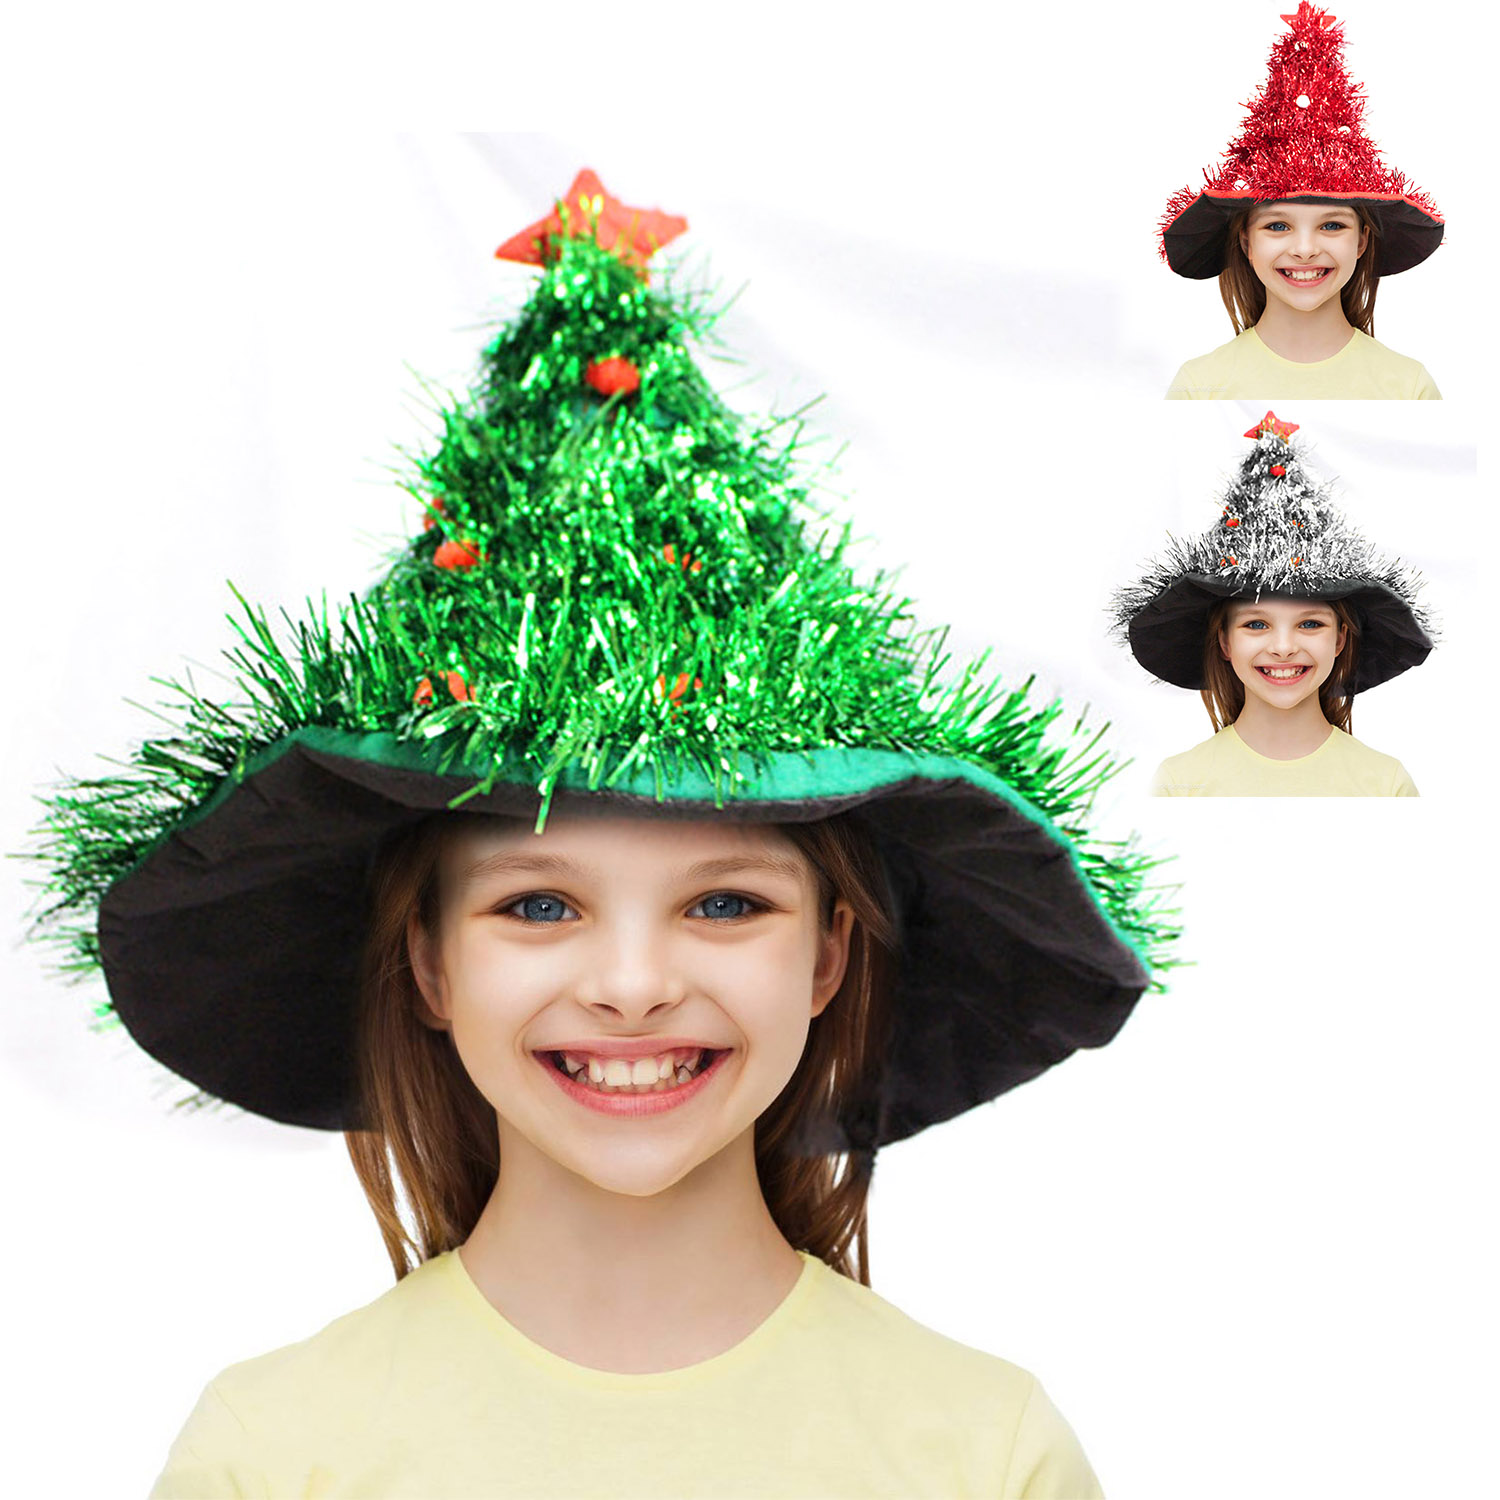 Funny Christmas Xmas Tree Hat Cap Headwear For Kids Adults Cosplay Masquerade Fancy Dress Party Costume Supplies Christmas Decor